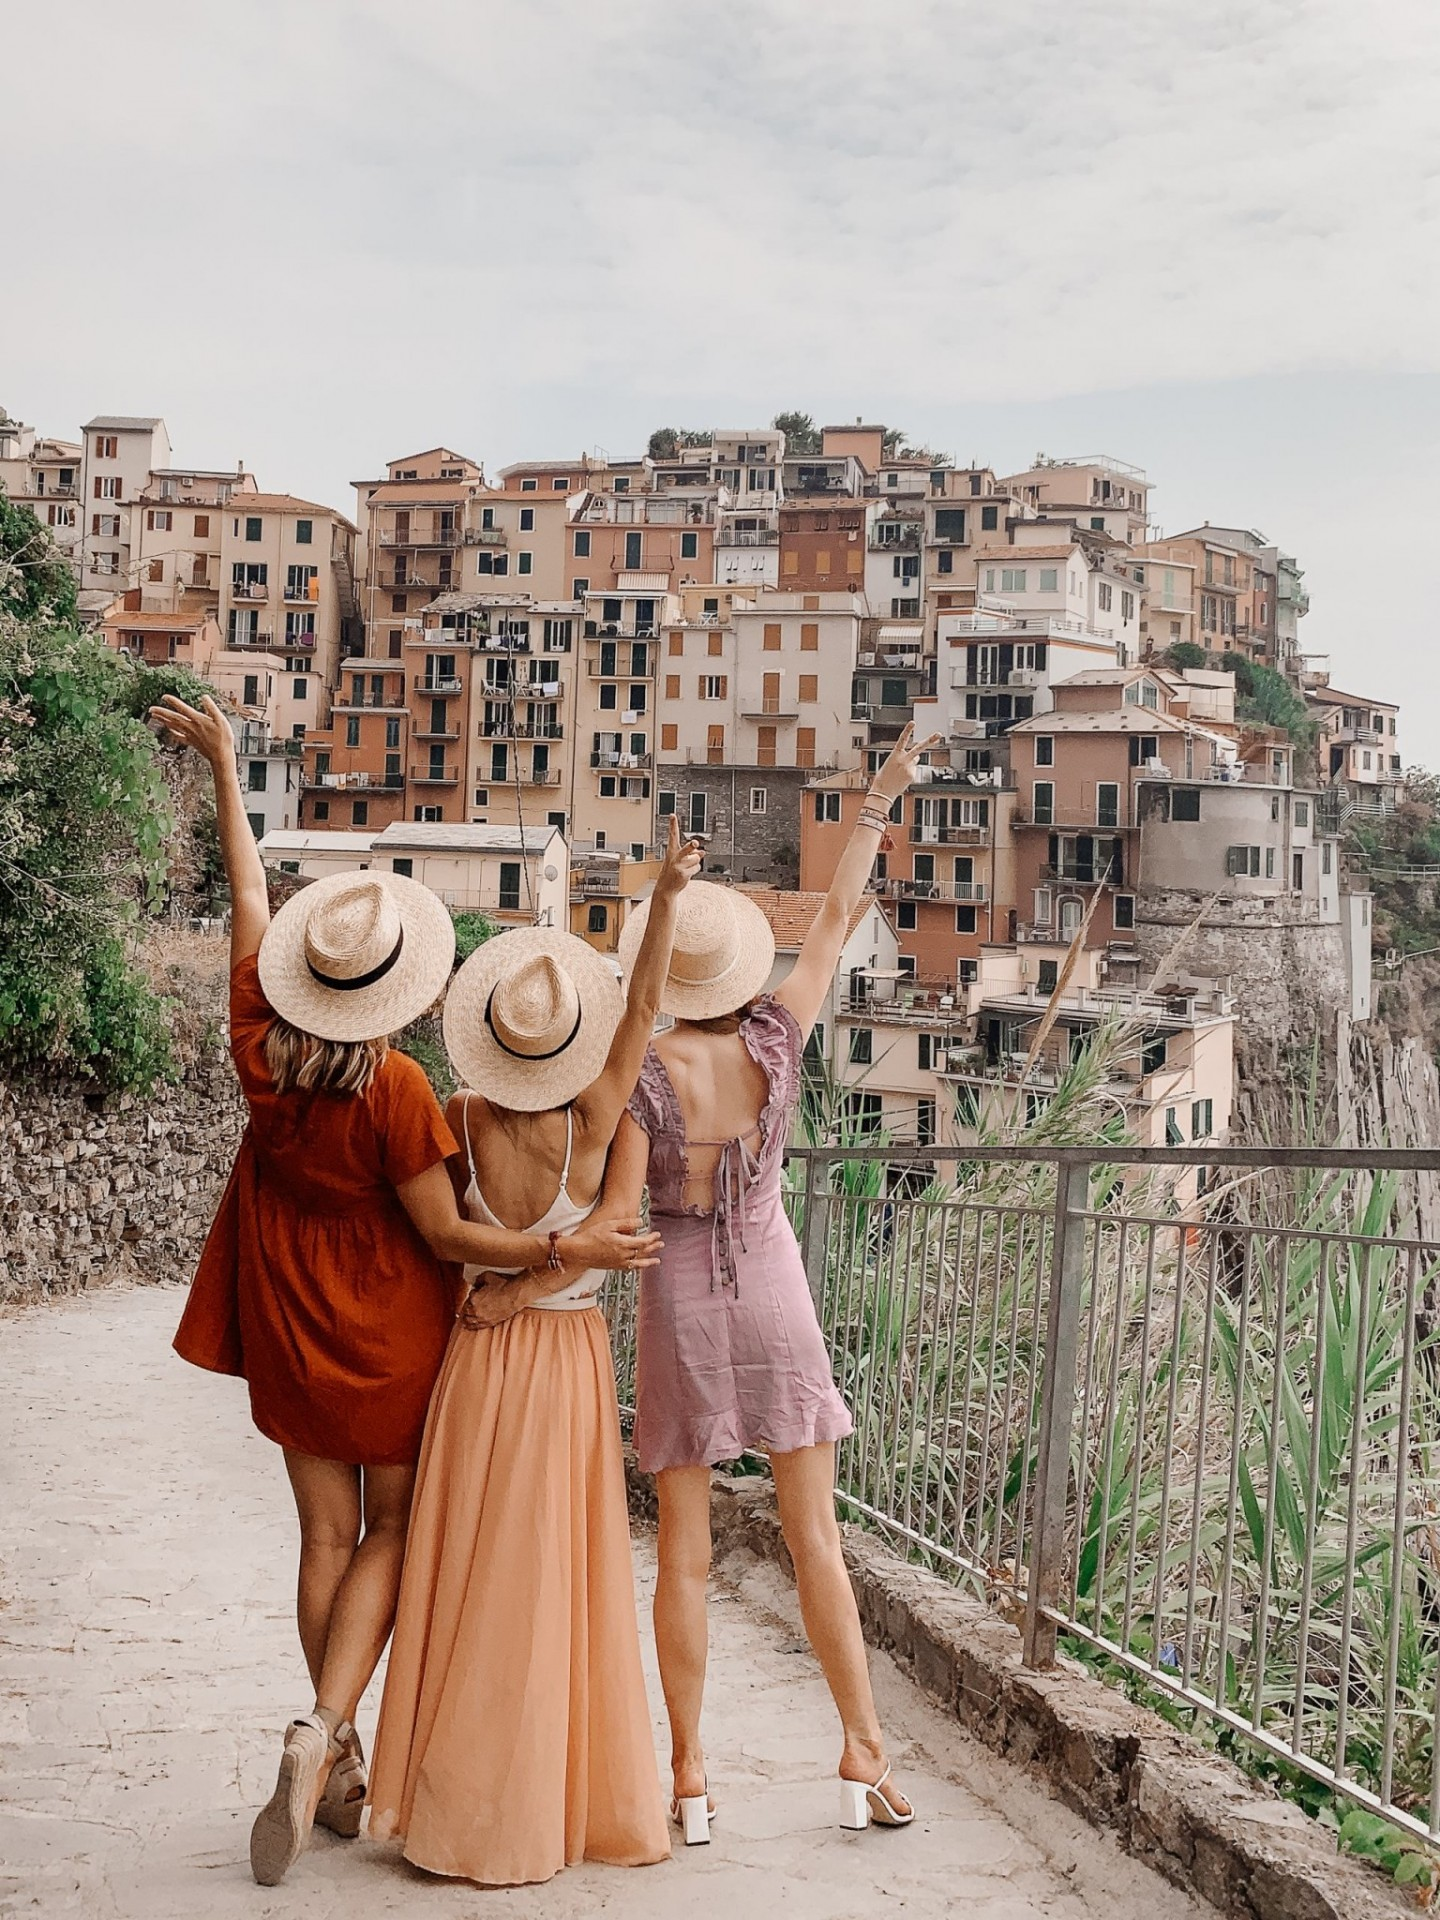 Lifestyle blogger Mollie Moore shares a Cinque Terre travel guide | Travel Guide: Things to do in Cinque Terre, Italy by popular London travel blogger, Mollie Moore: image of three women standing outside in Cinque Terre, Italy.